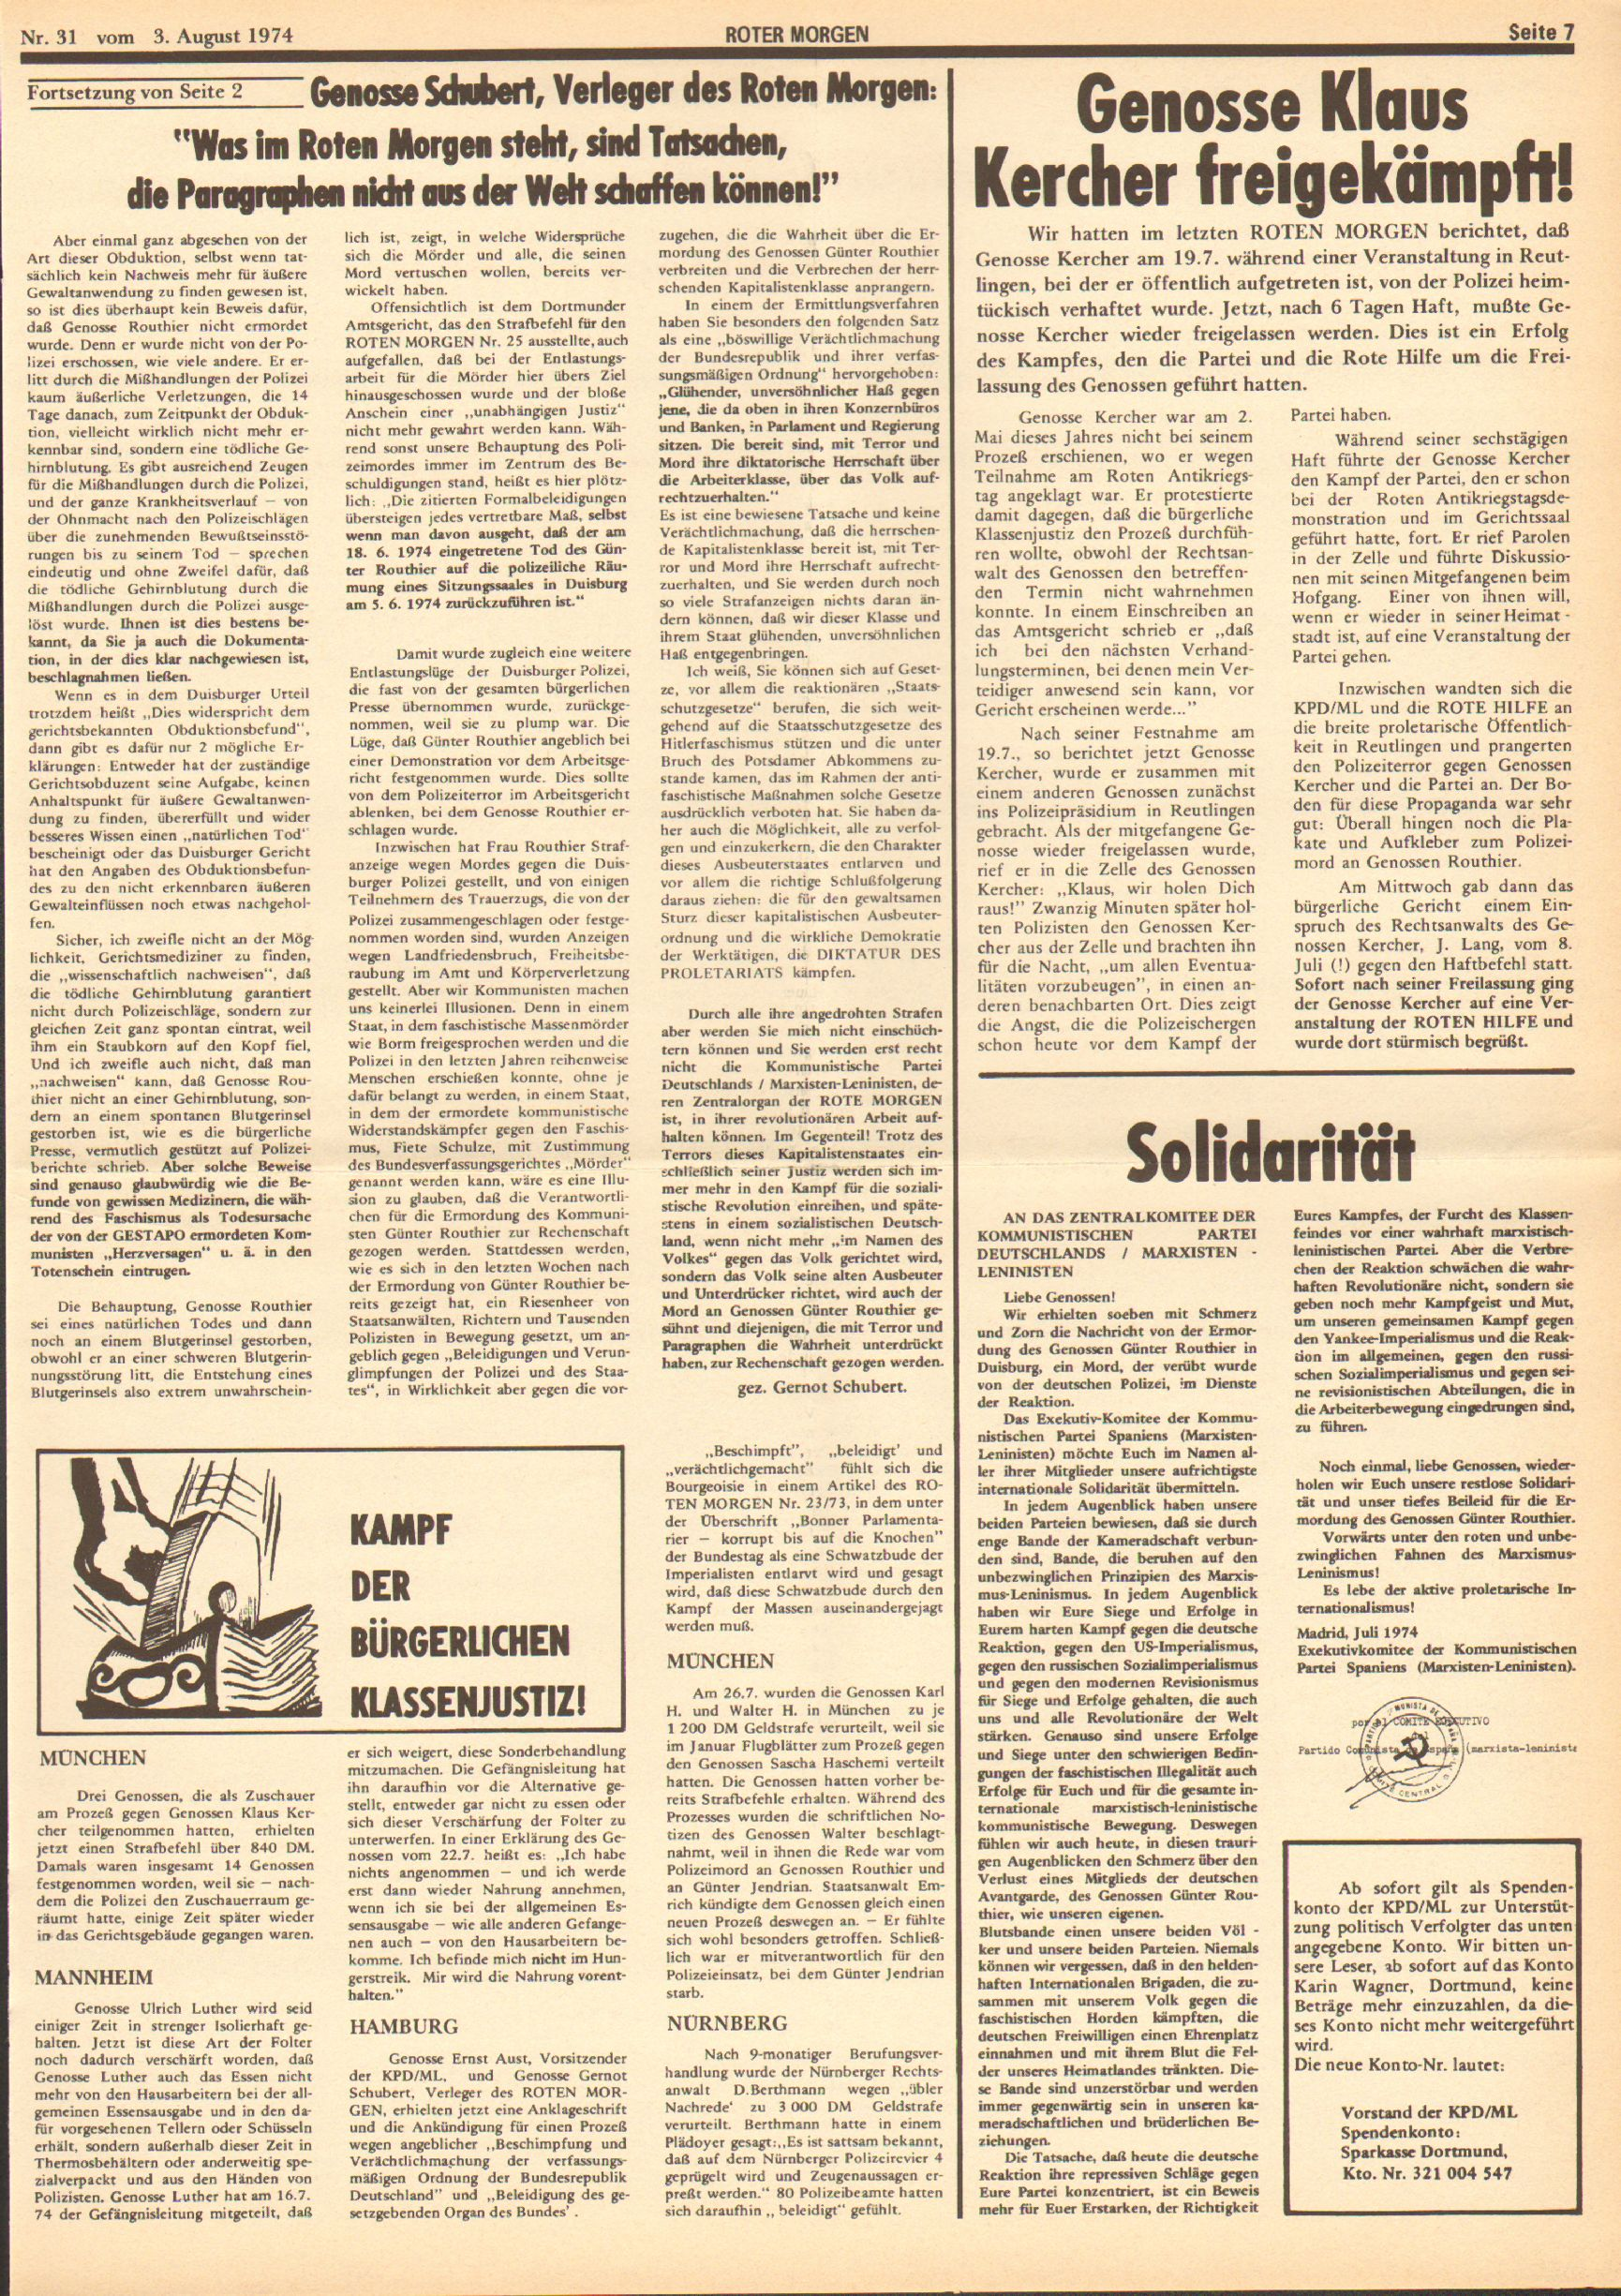 Roter Morgen, 8. Jg., 3. August 1974, Nr. 31, Seite 7